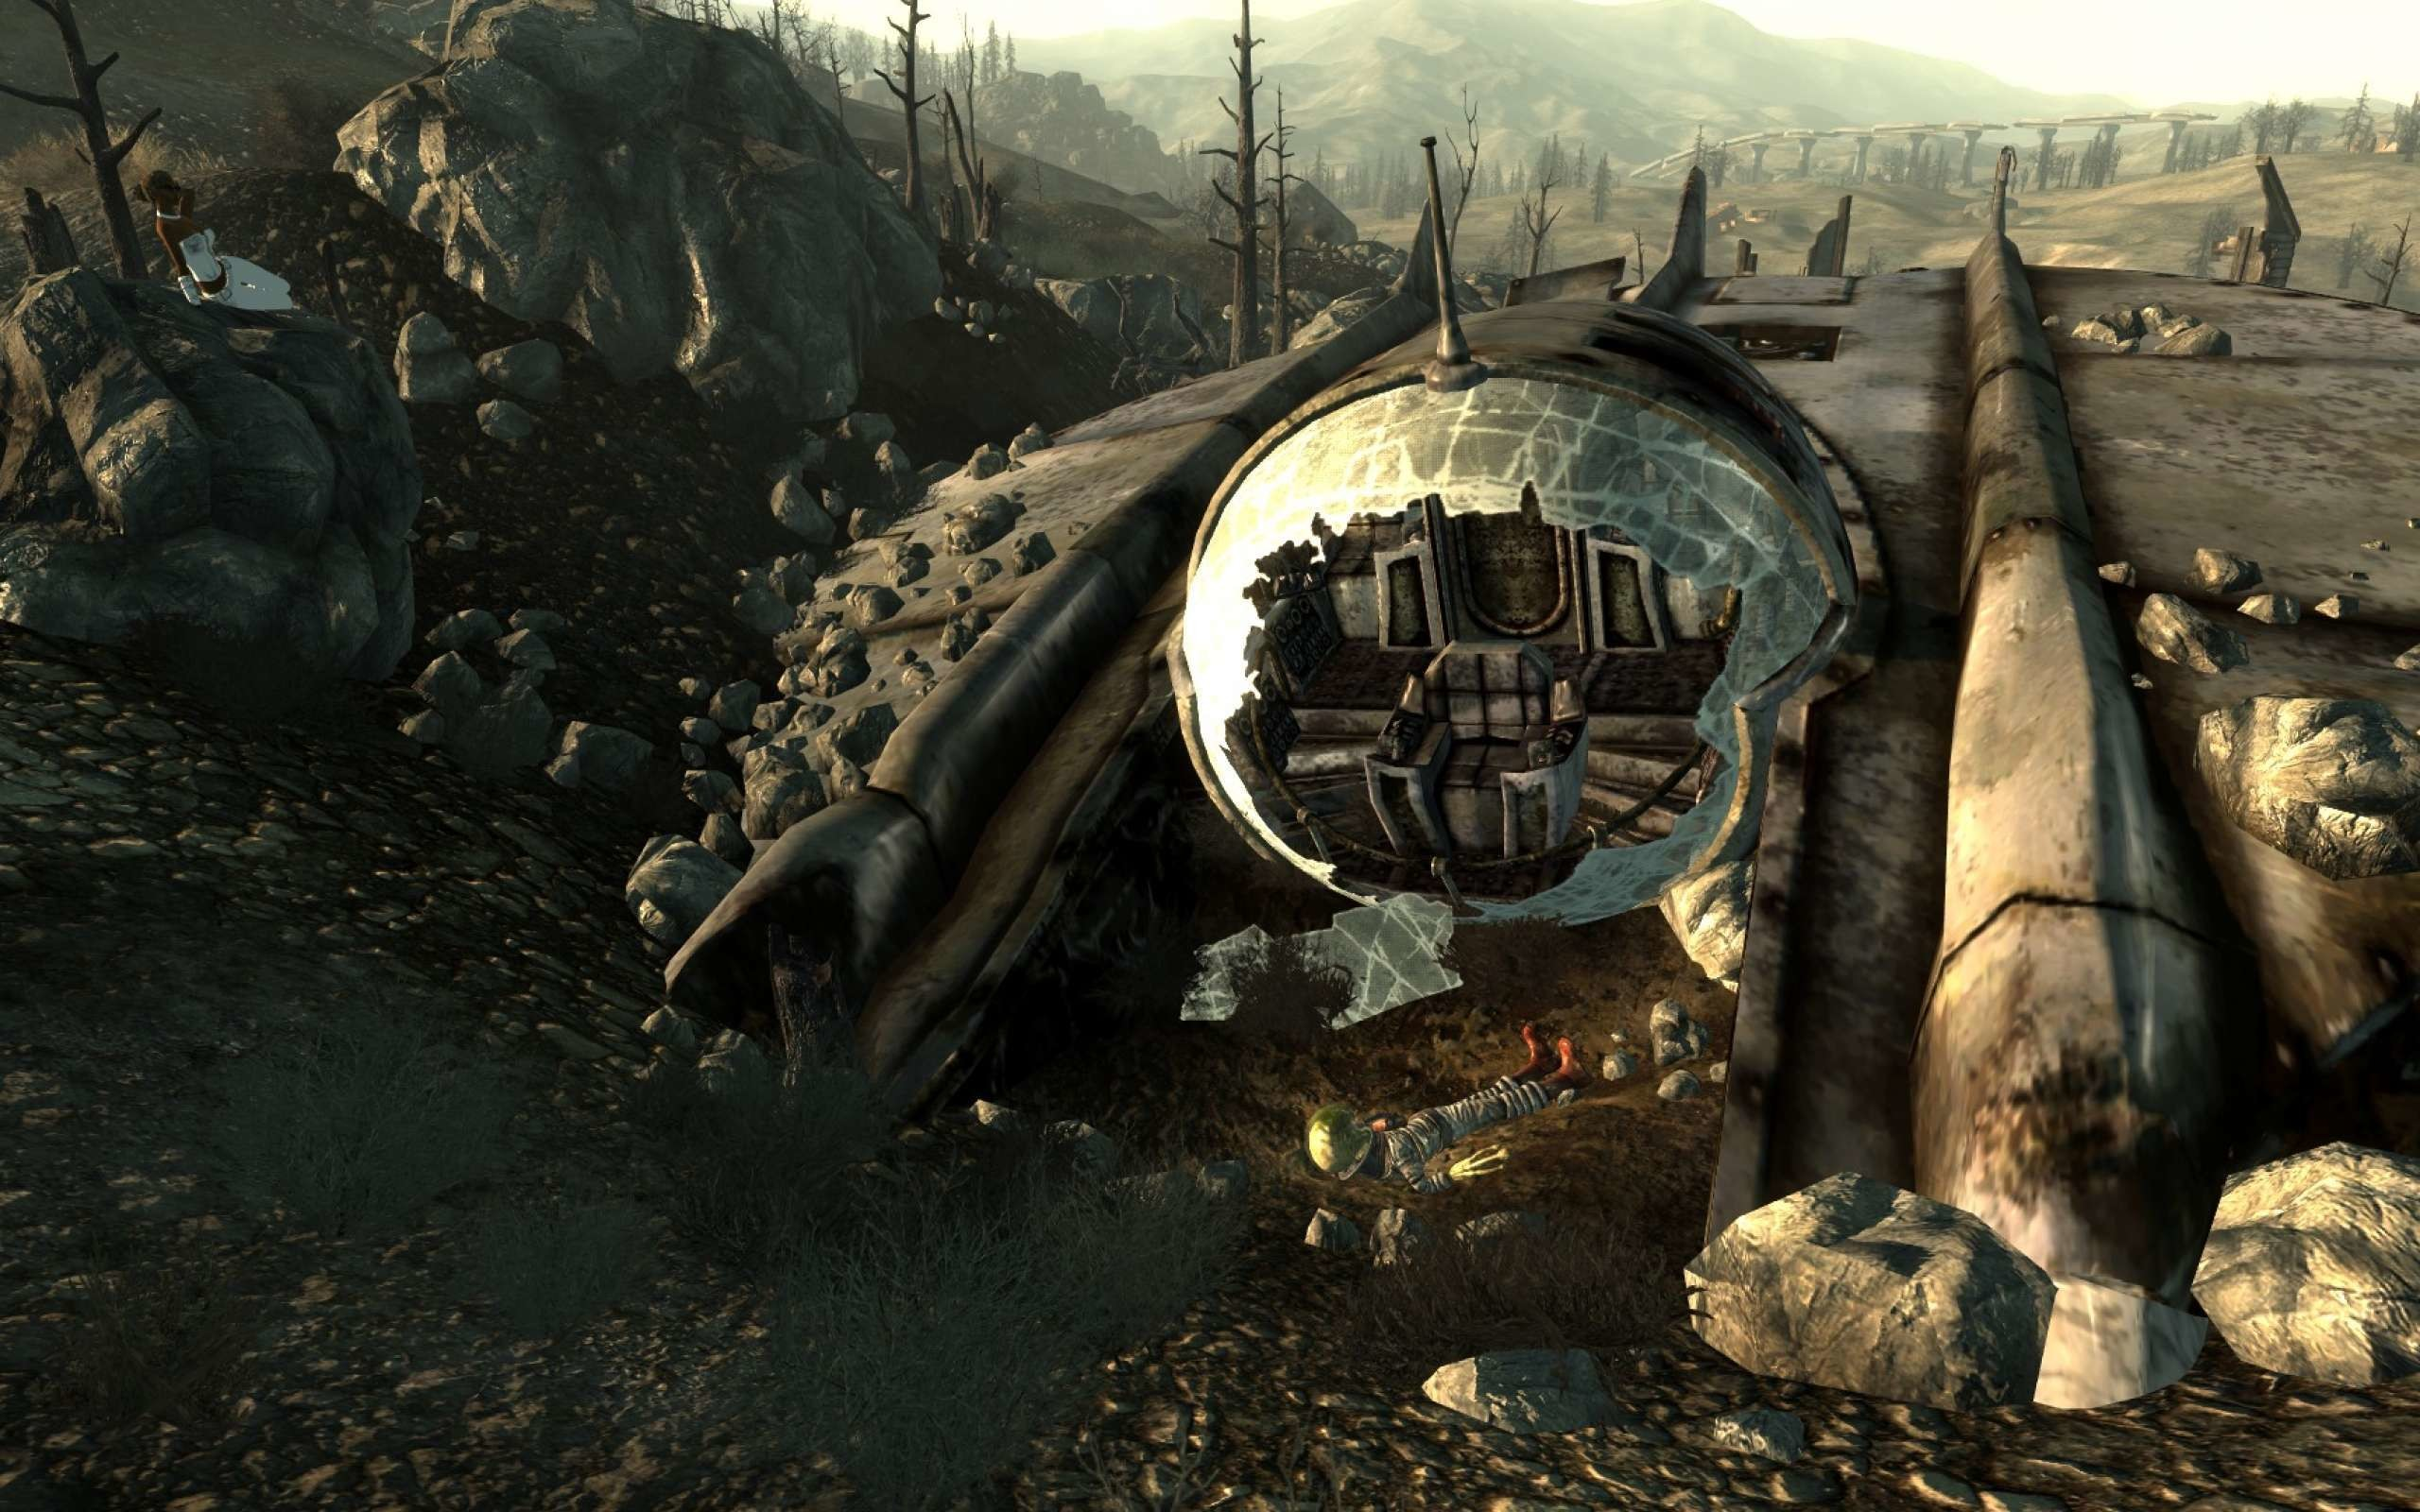 2560x1600 Fallout Alien Game Wallpaper HD Widescreen Archives - HD Wallpapers .